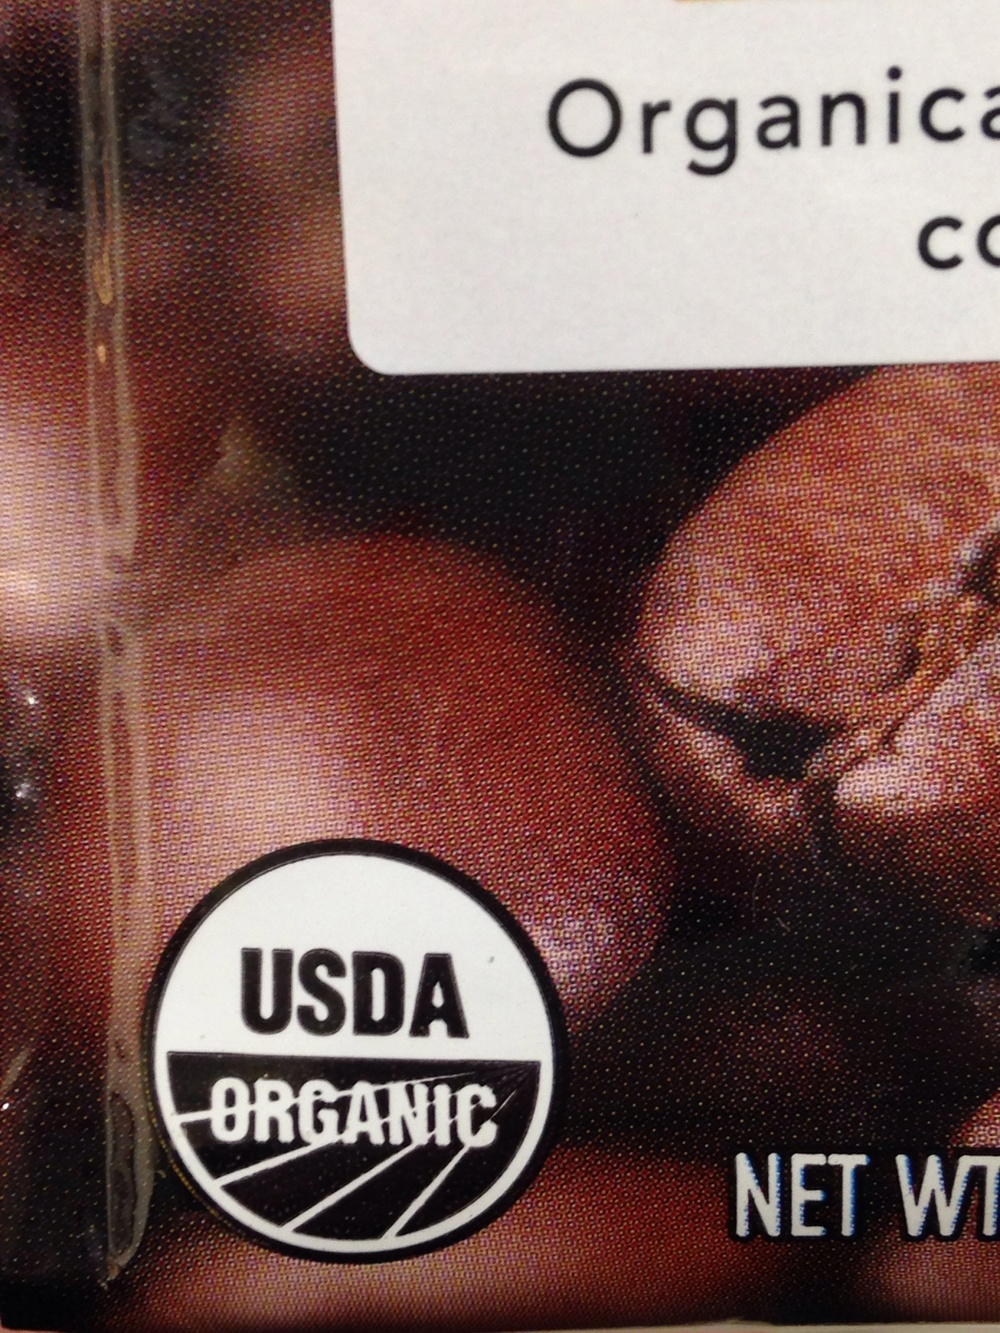 Look for this seal if you want USDA-certified organic coffee.